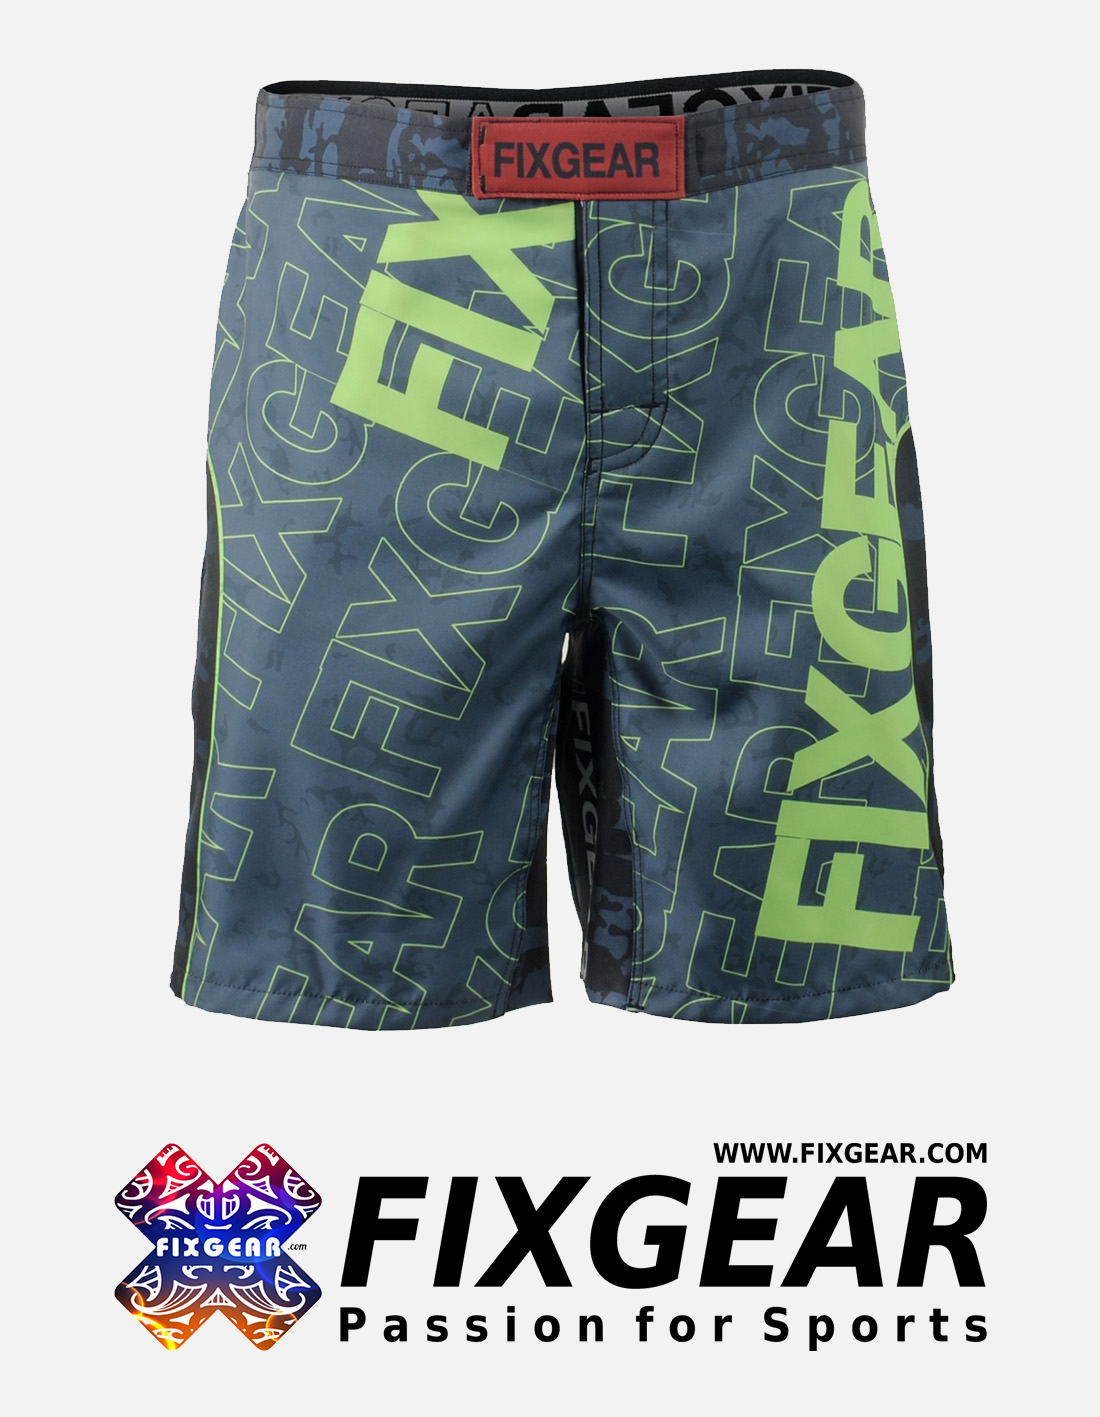 FIXGEAR FMS-H1 Training Shorts